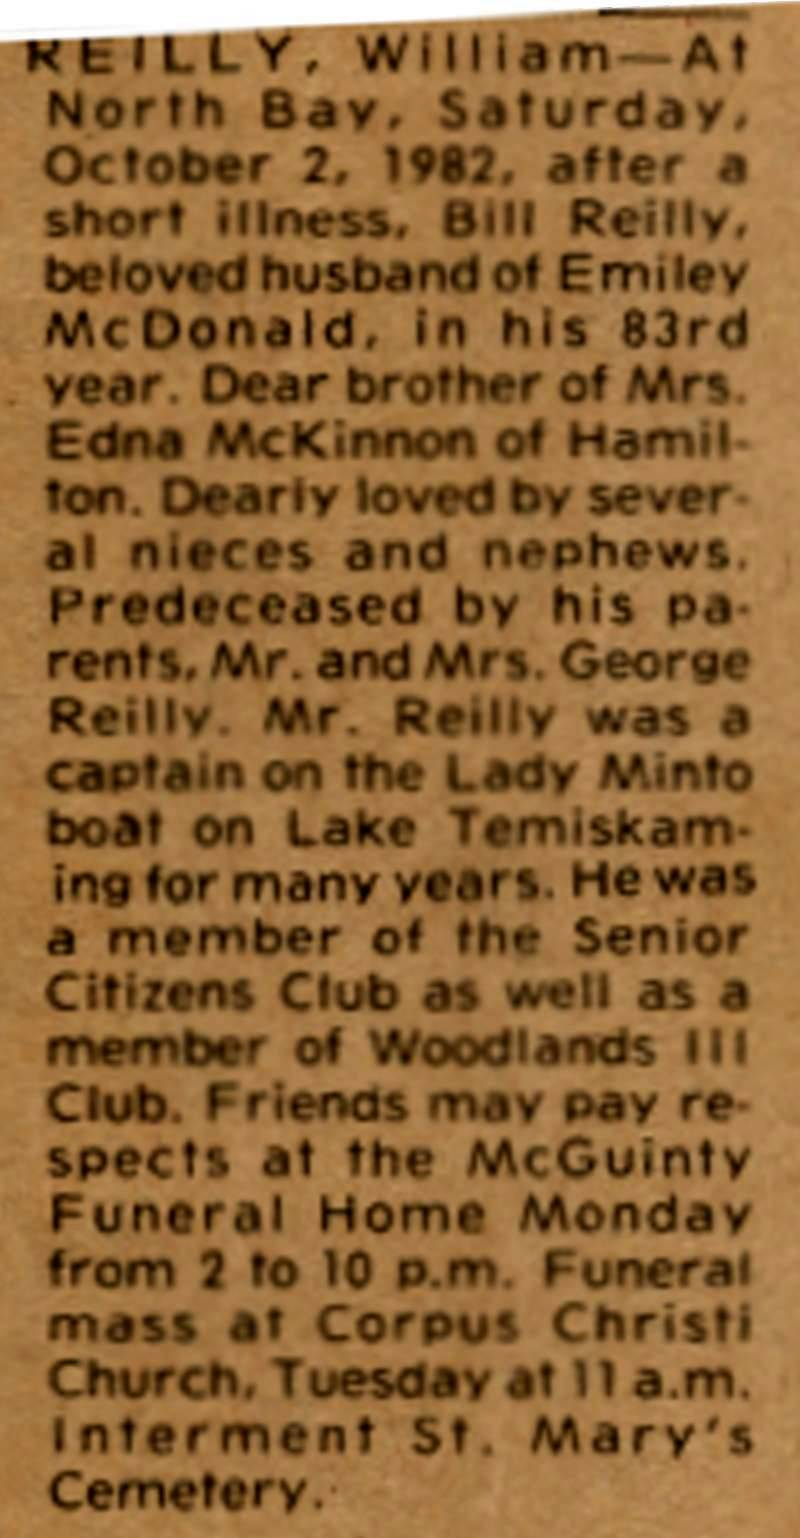 William Rielly, Obituary, North Bay, Ontario, Canada